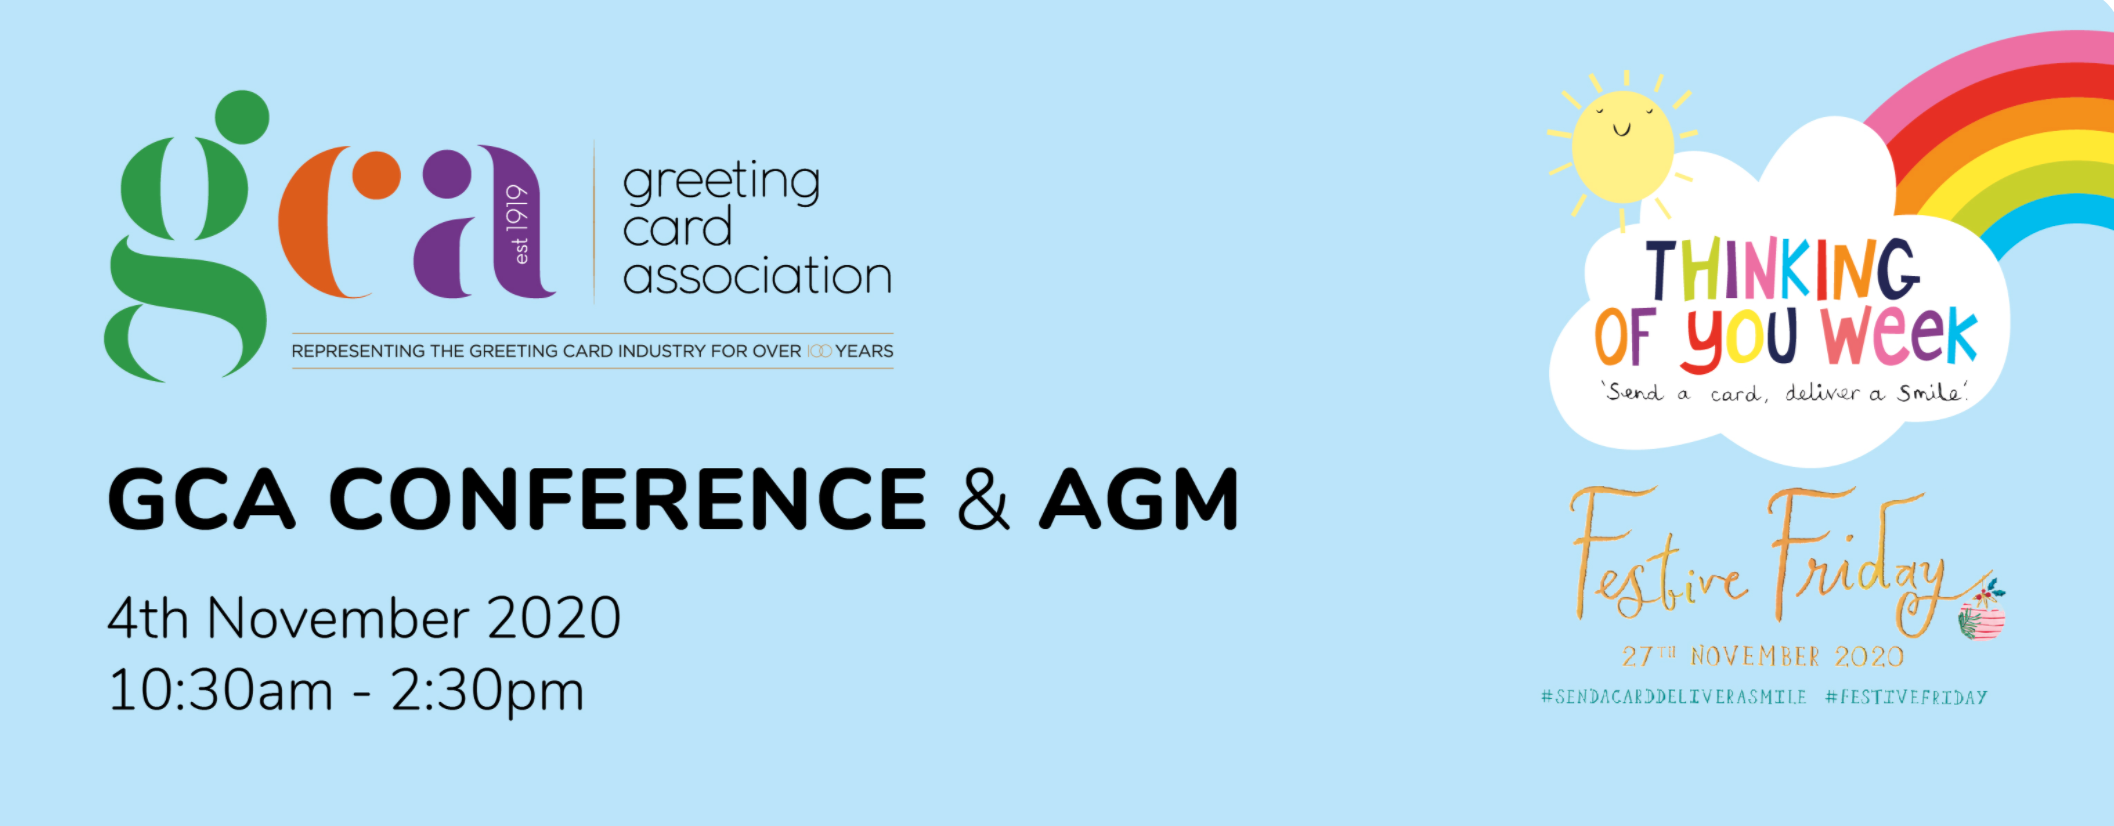 Above: The virtual platform of Hopin is being used to host the GCA Conference and AGM this year.